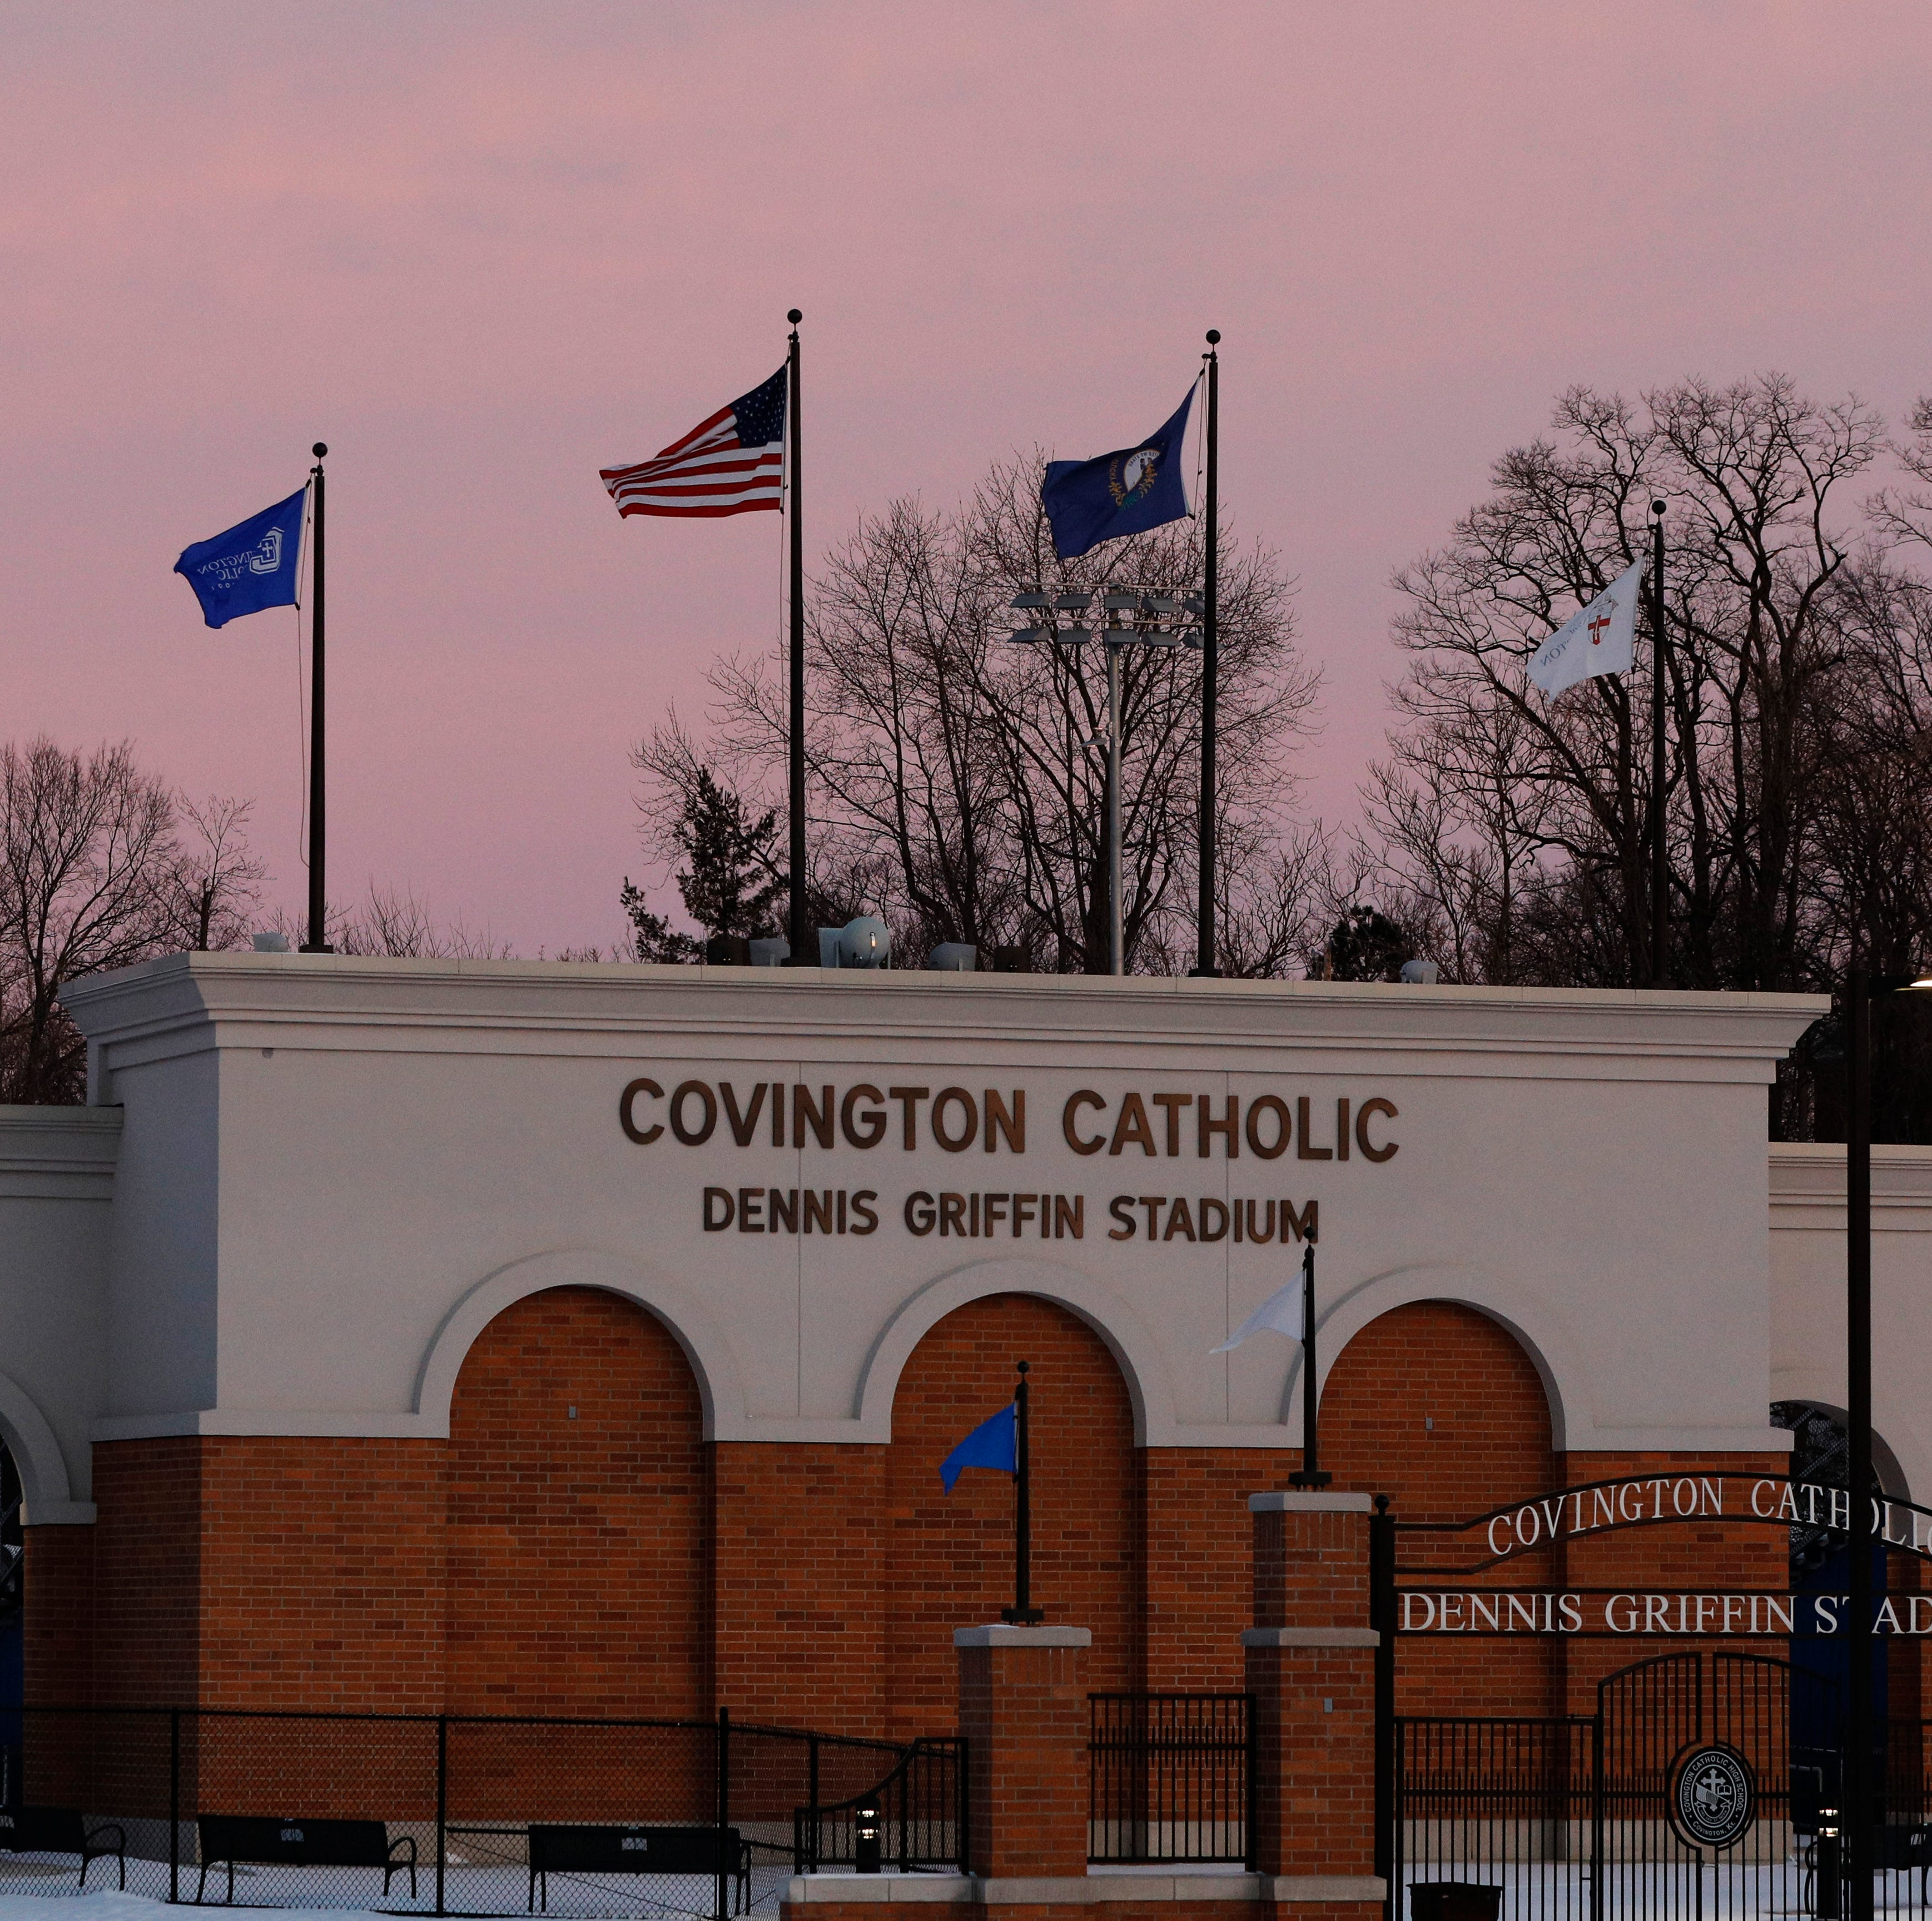 Covington Catholic chaperones, what happened in DC is your fault